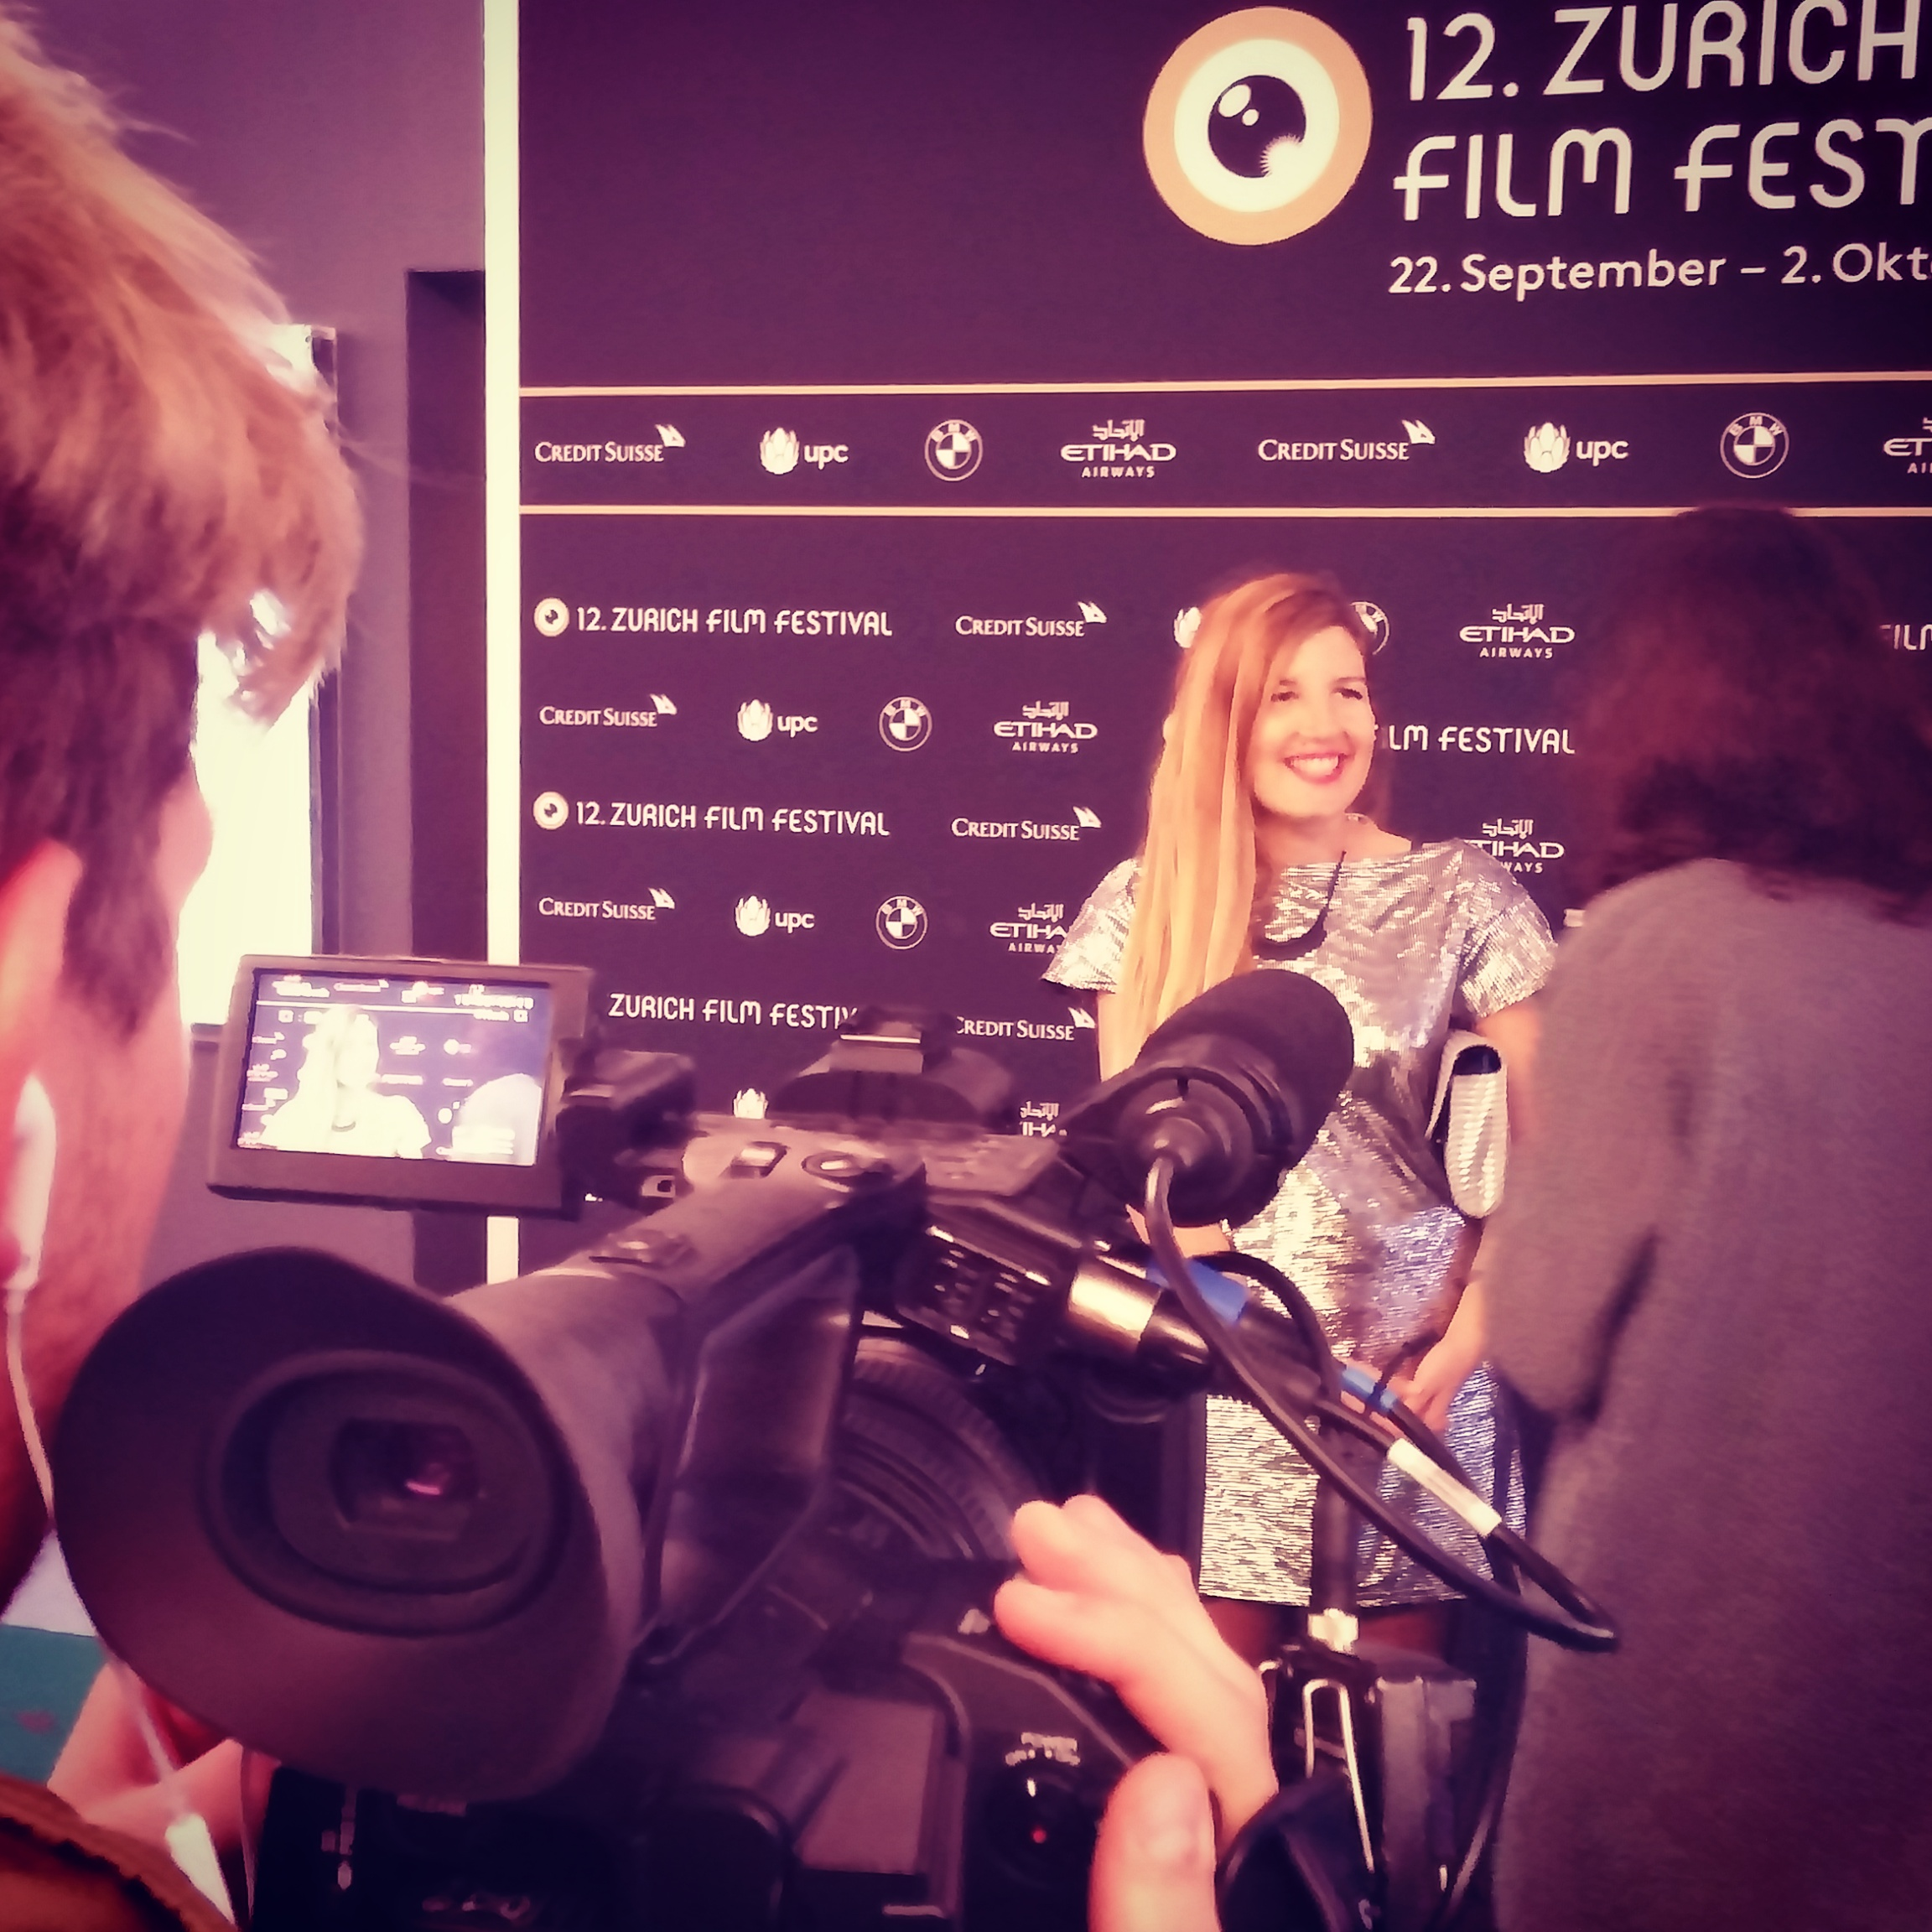 Jury in the Zurich Film Festival